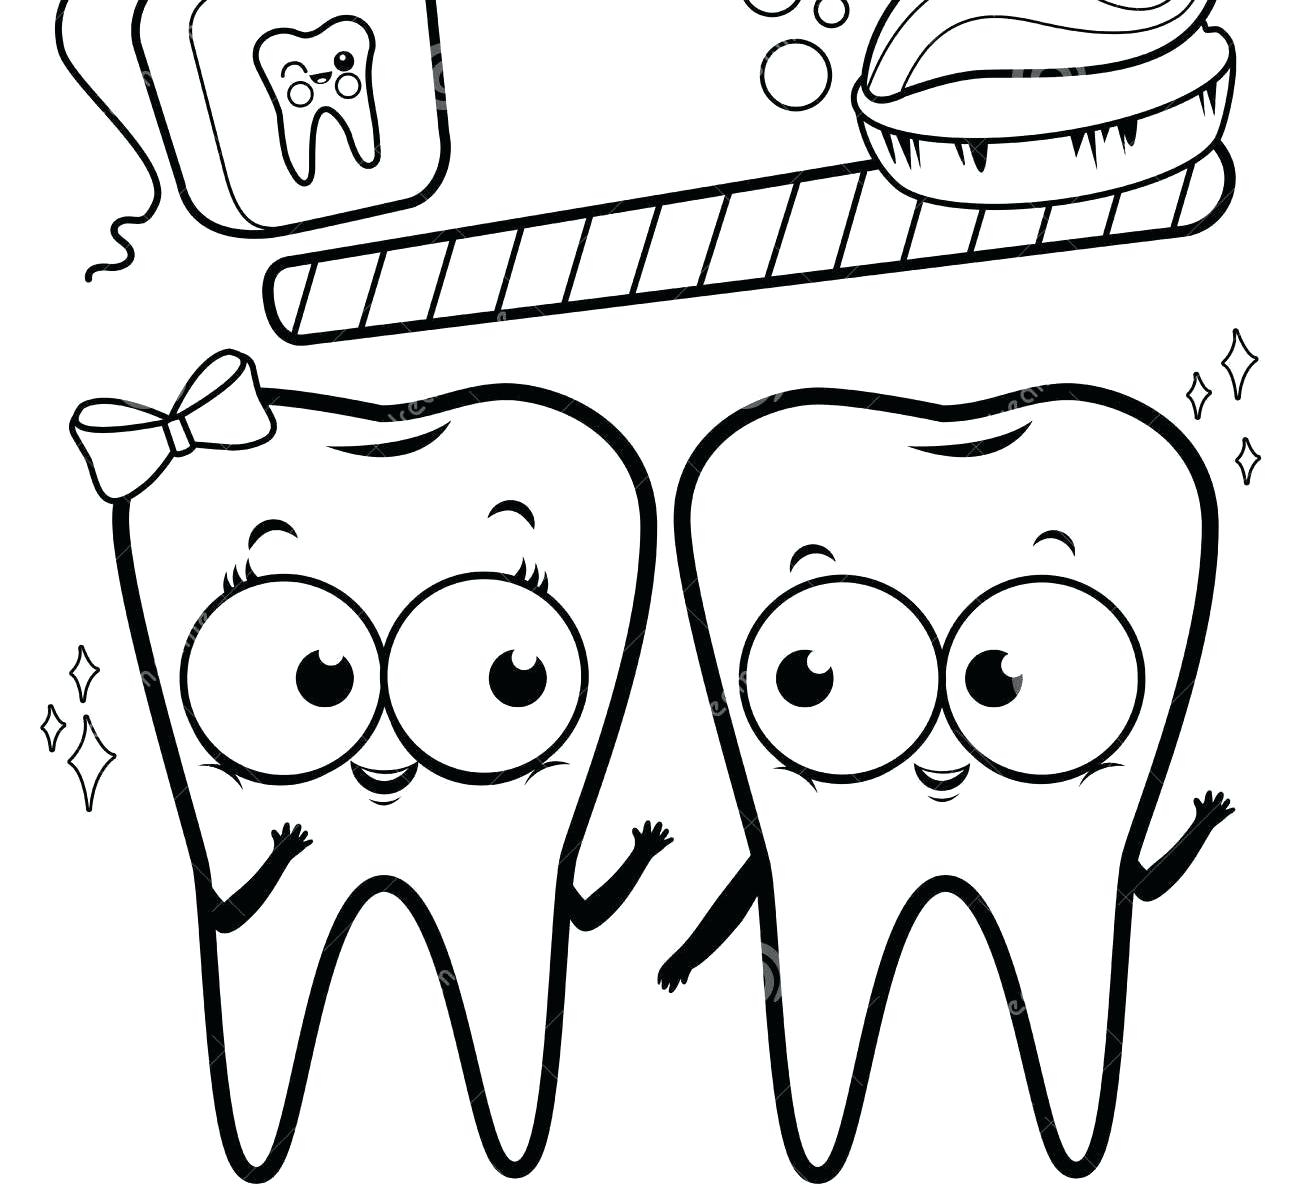 Dental Coloring Pages Printable tooth Kids Teeth Page and Color Printable Of Latest Dental Health Coloring Sheets Healthy Pages My Plate Dairy to Print